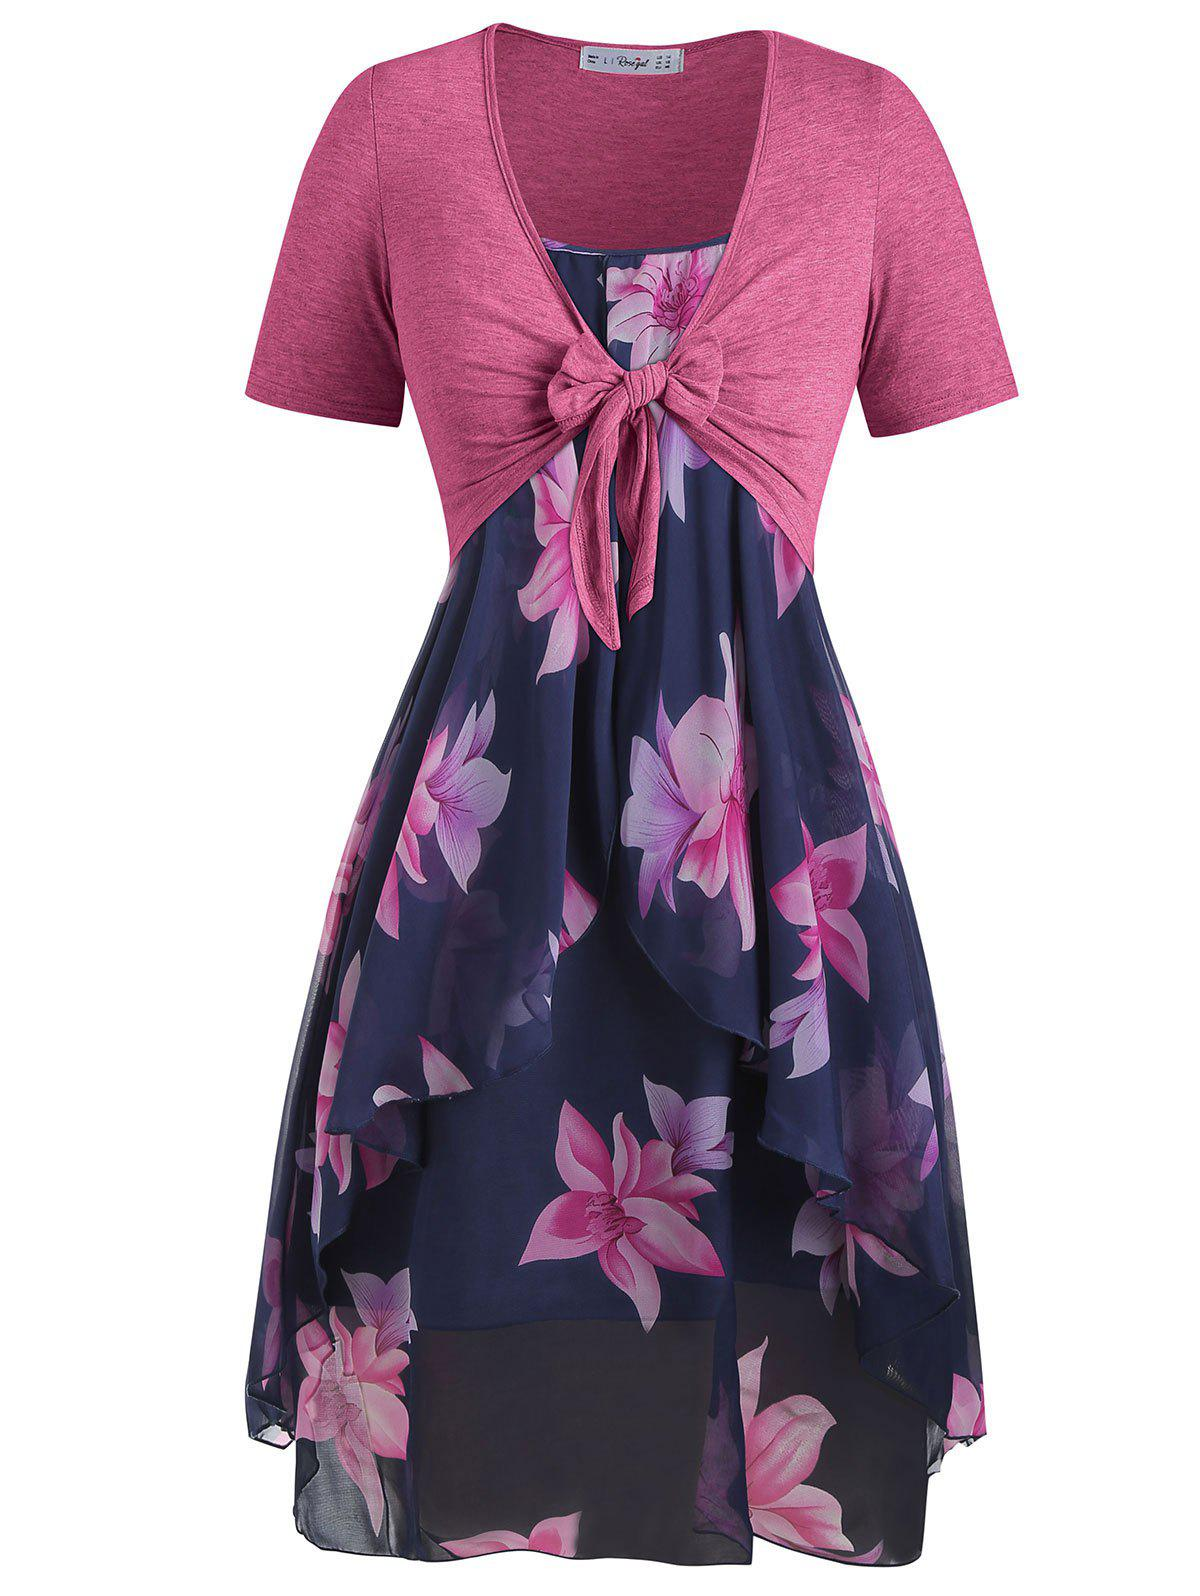 Plus Size Knot Top and Floral Chiffon Dress - MIDNIGHT BLUE 5X